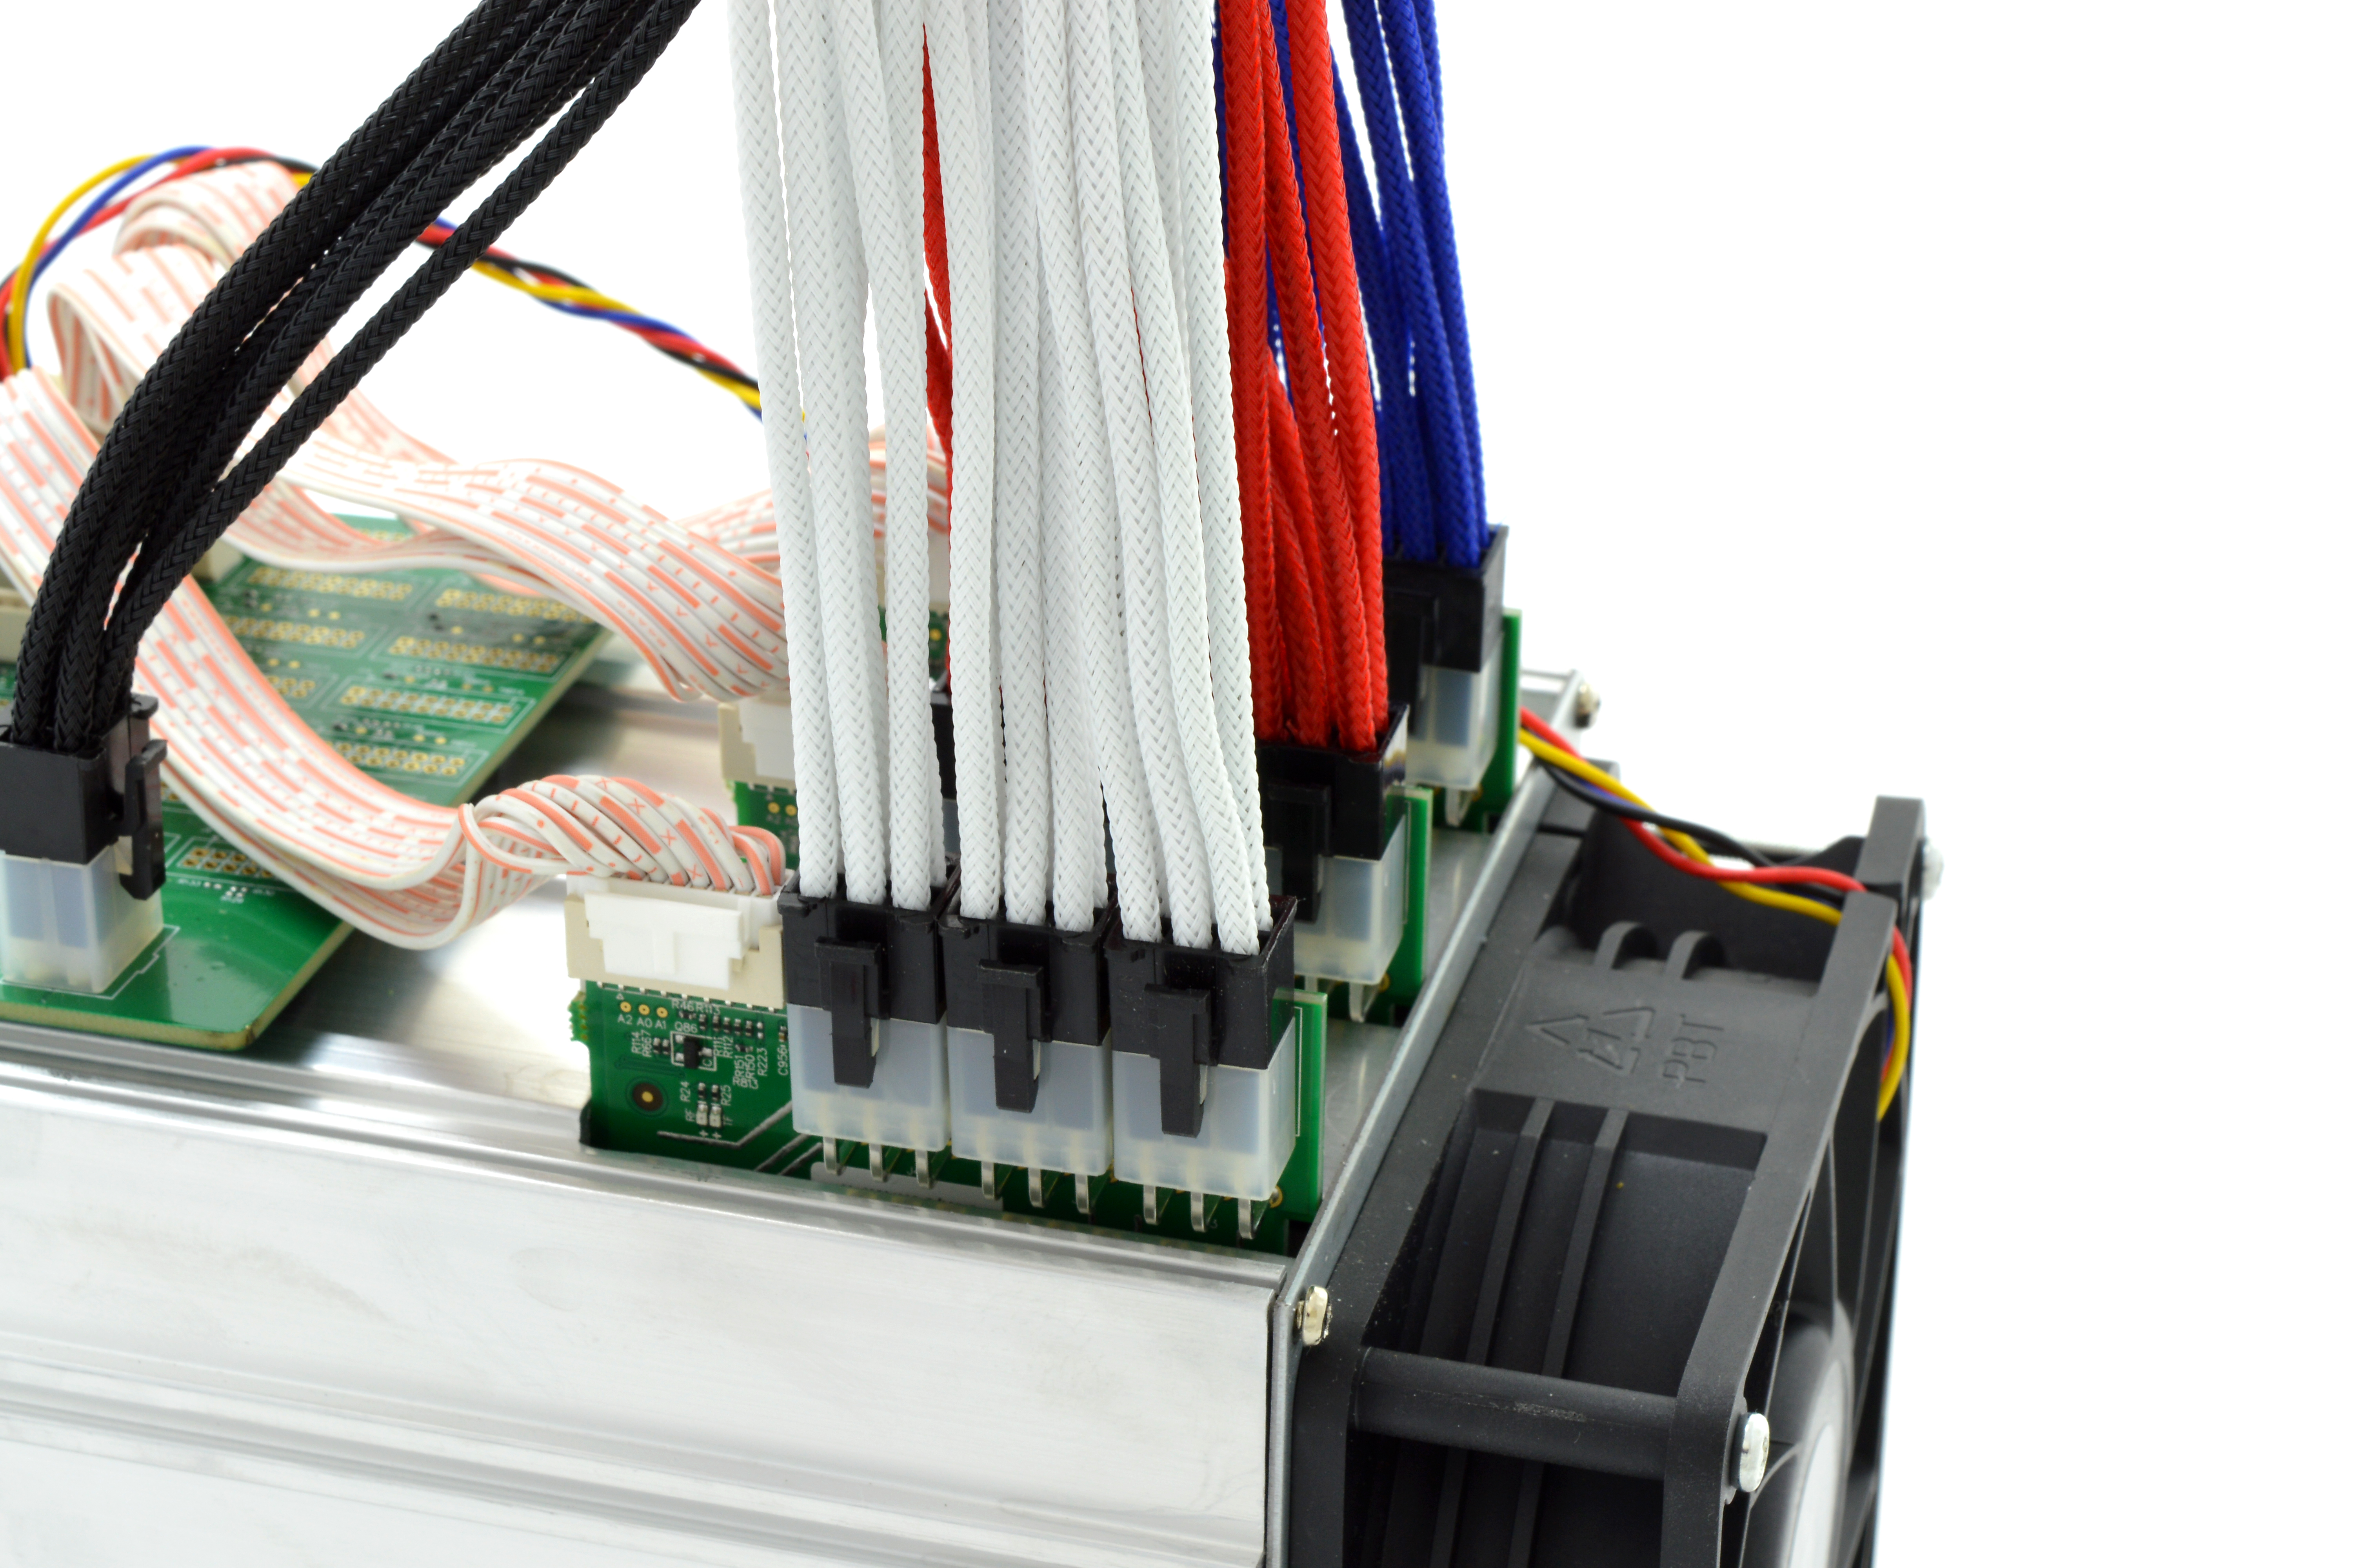 Guide] Dogie's Comprehensive Bitmain Antminer S9 Setup [HD]